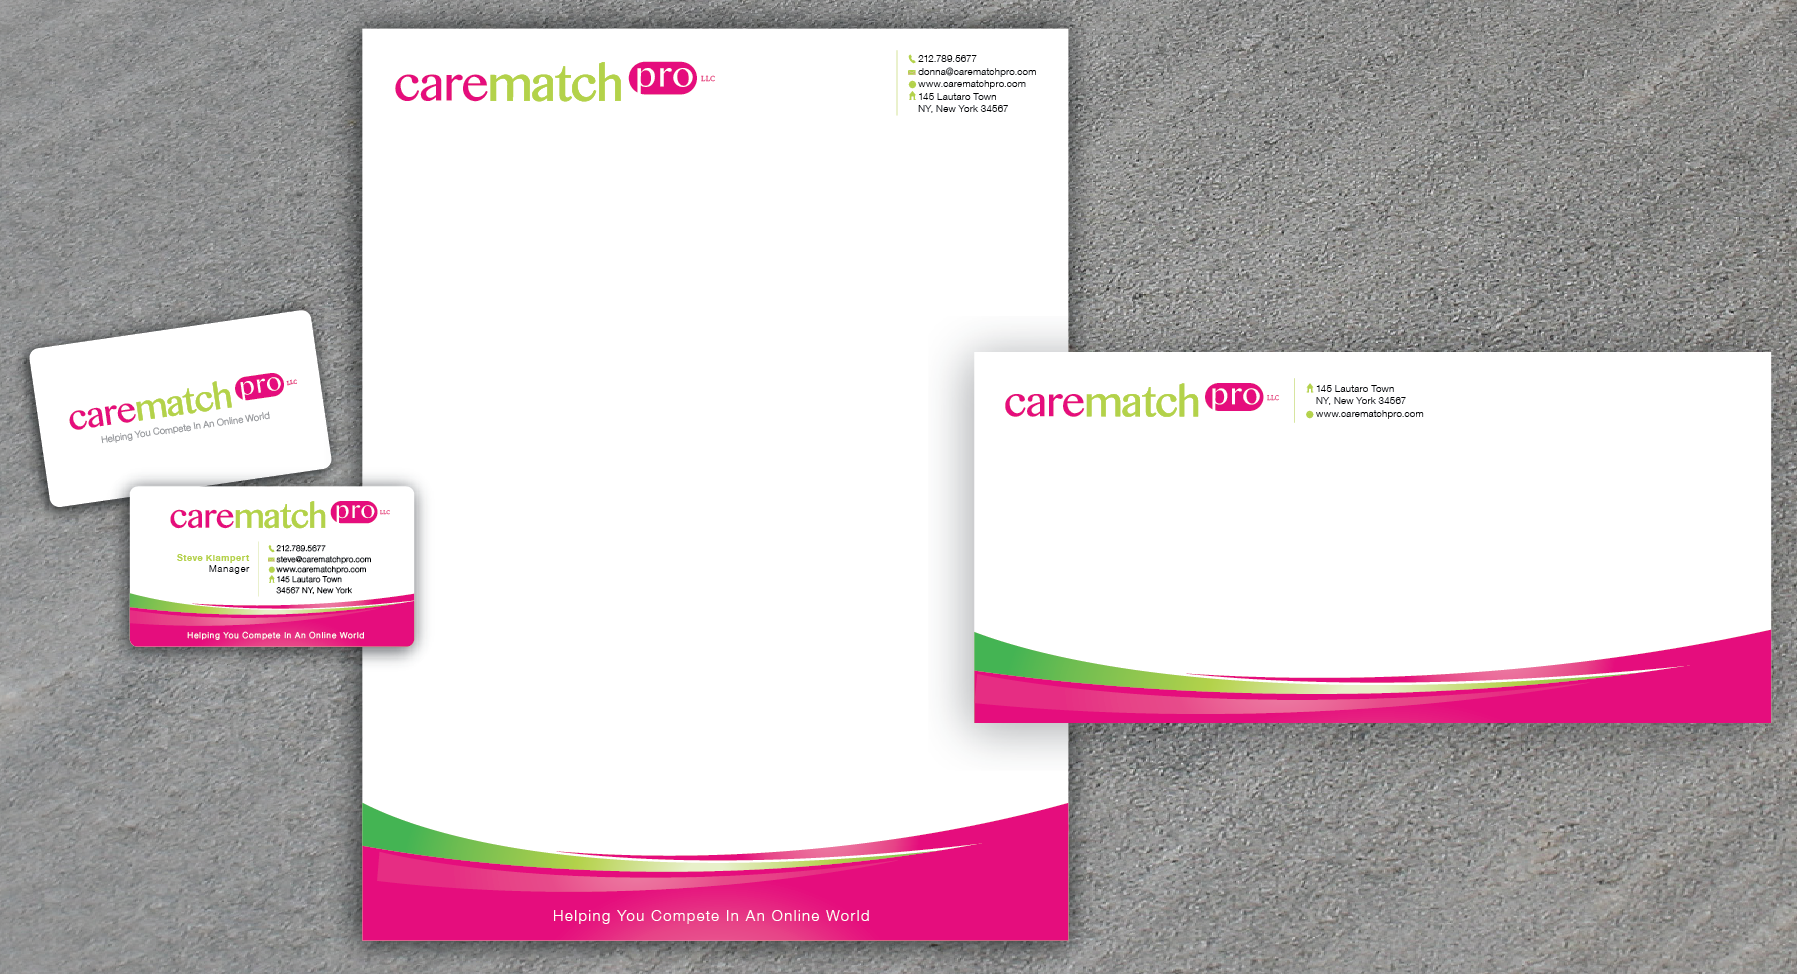 New stationery wanted for CareMatchPro.com